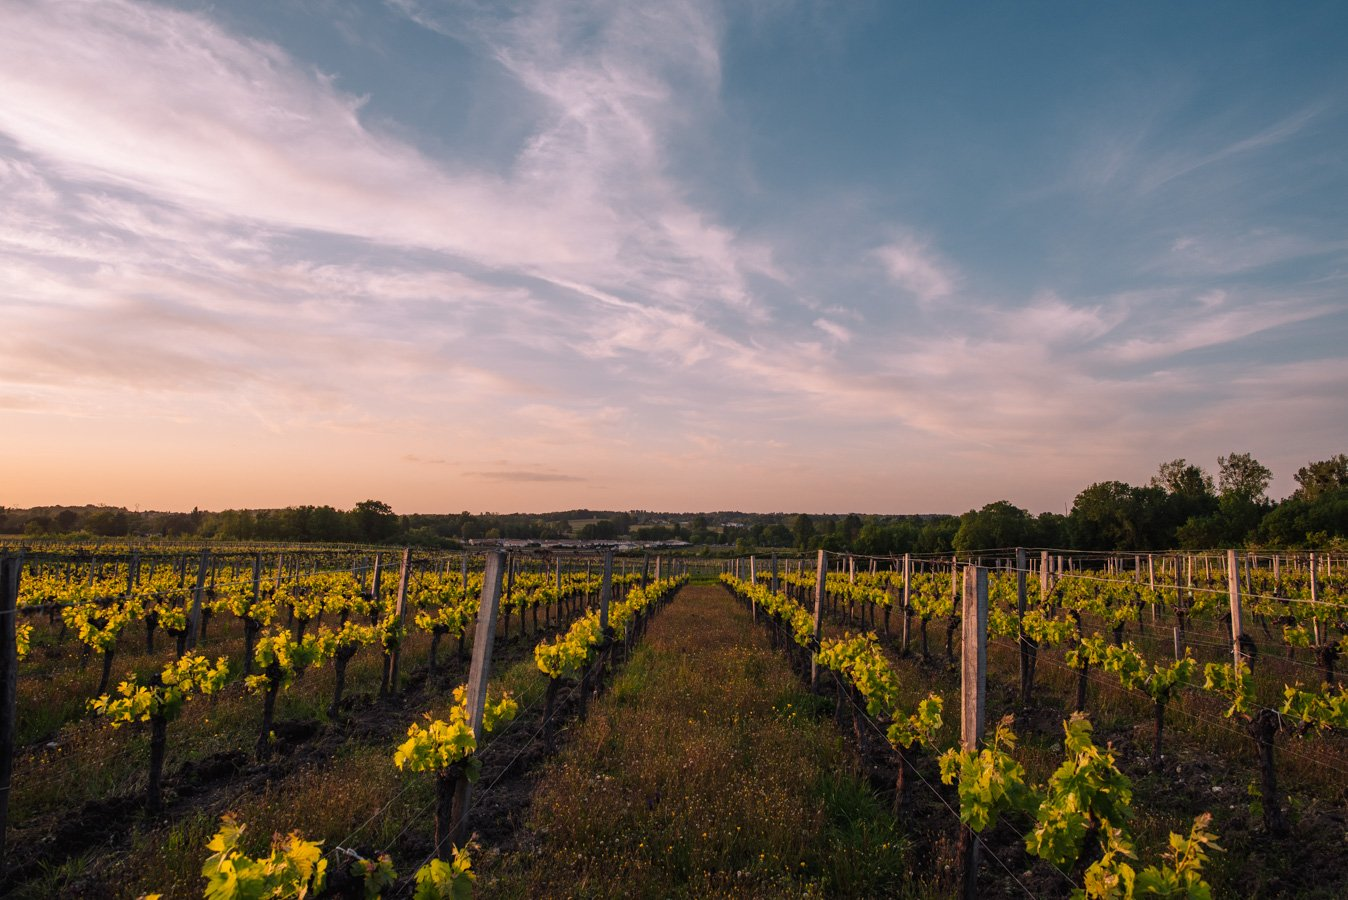 Exploring the bordeaux wine region during spring